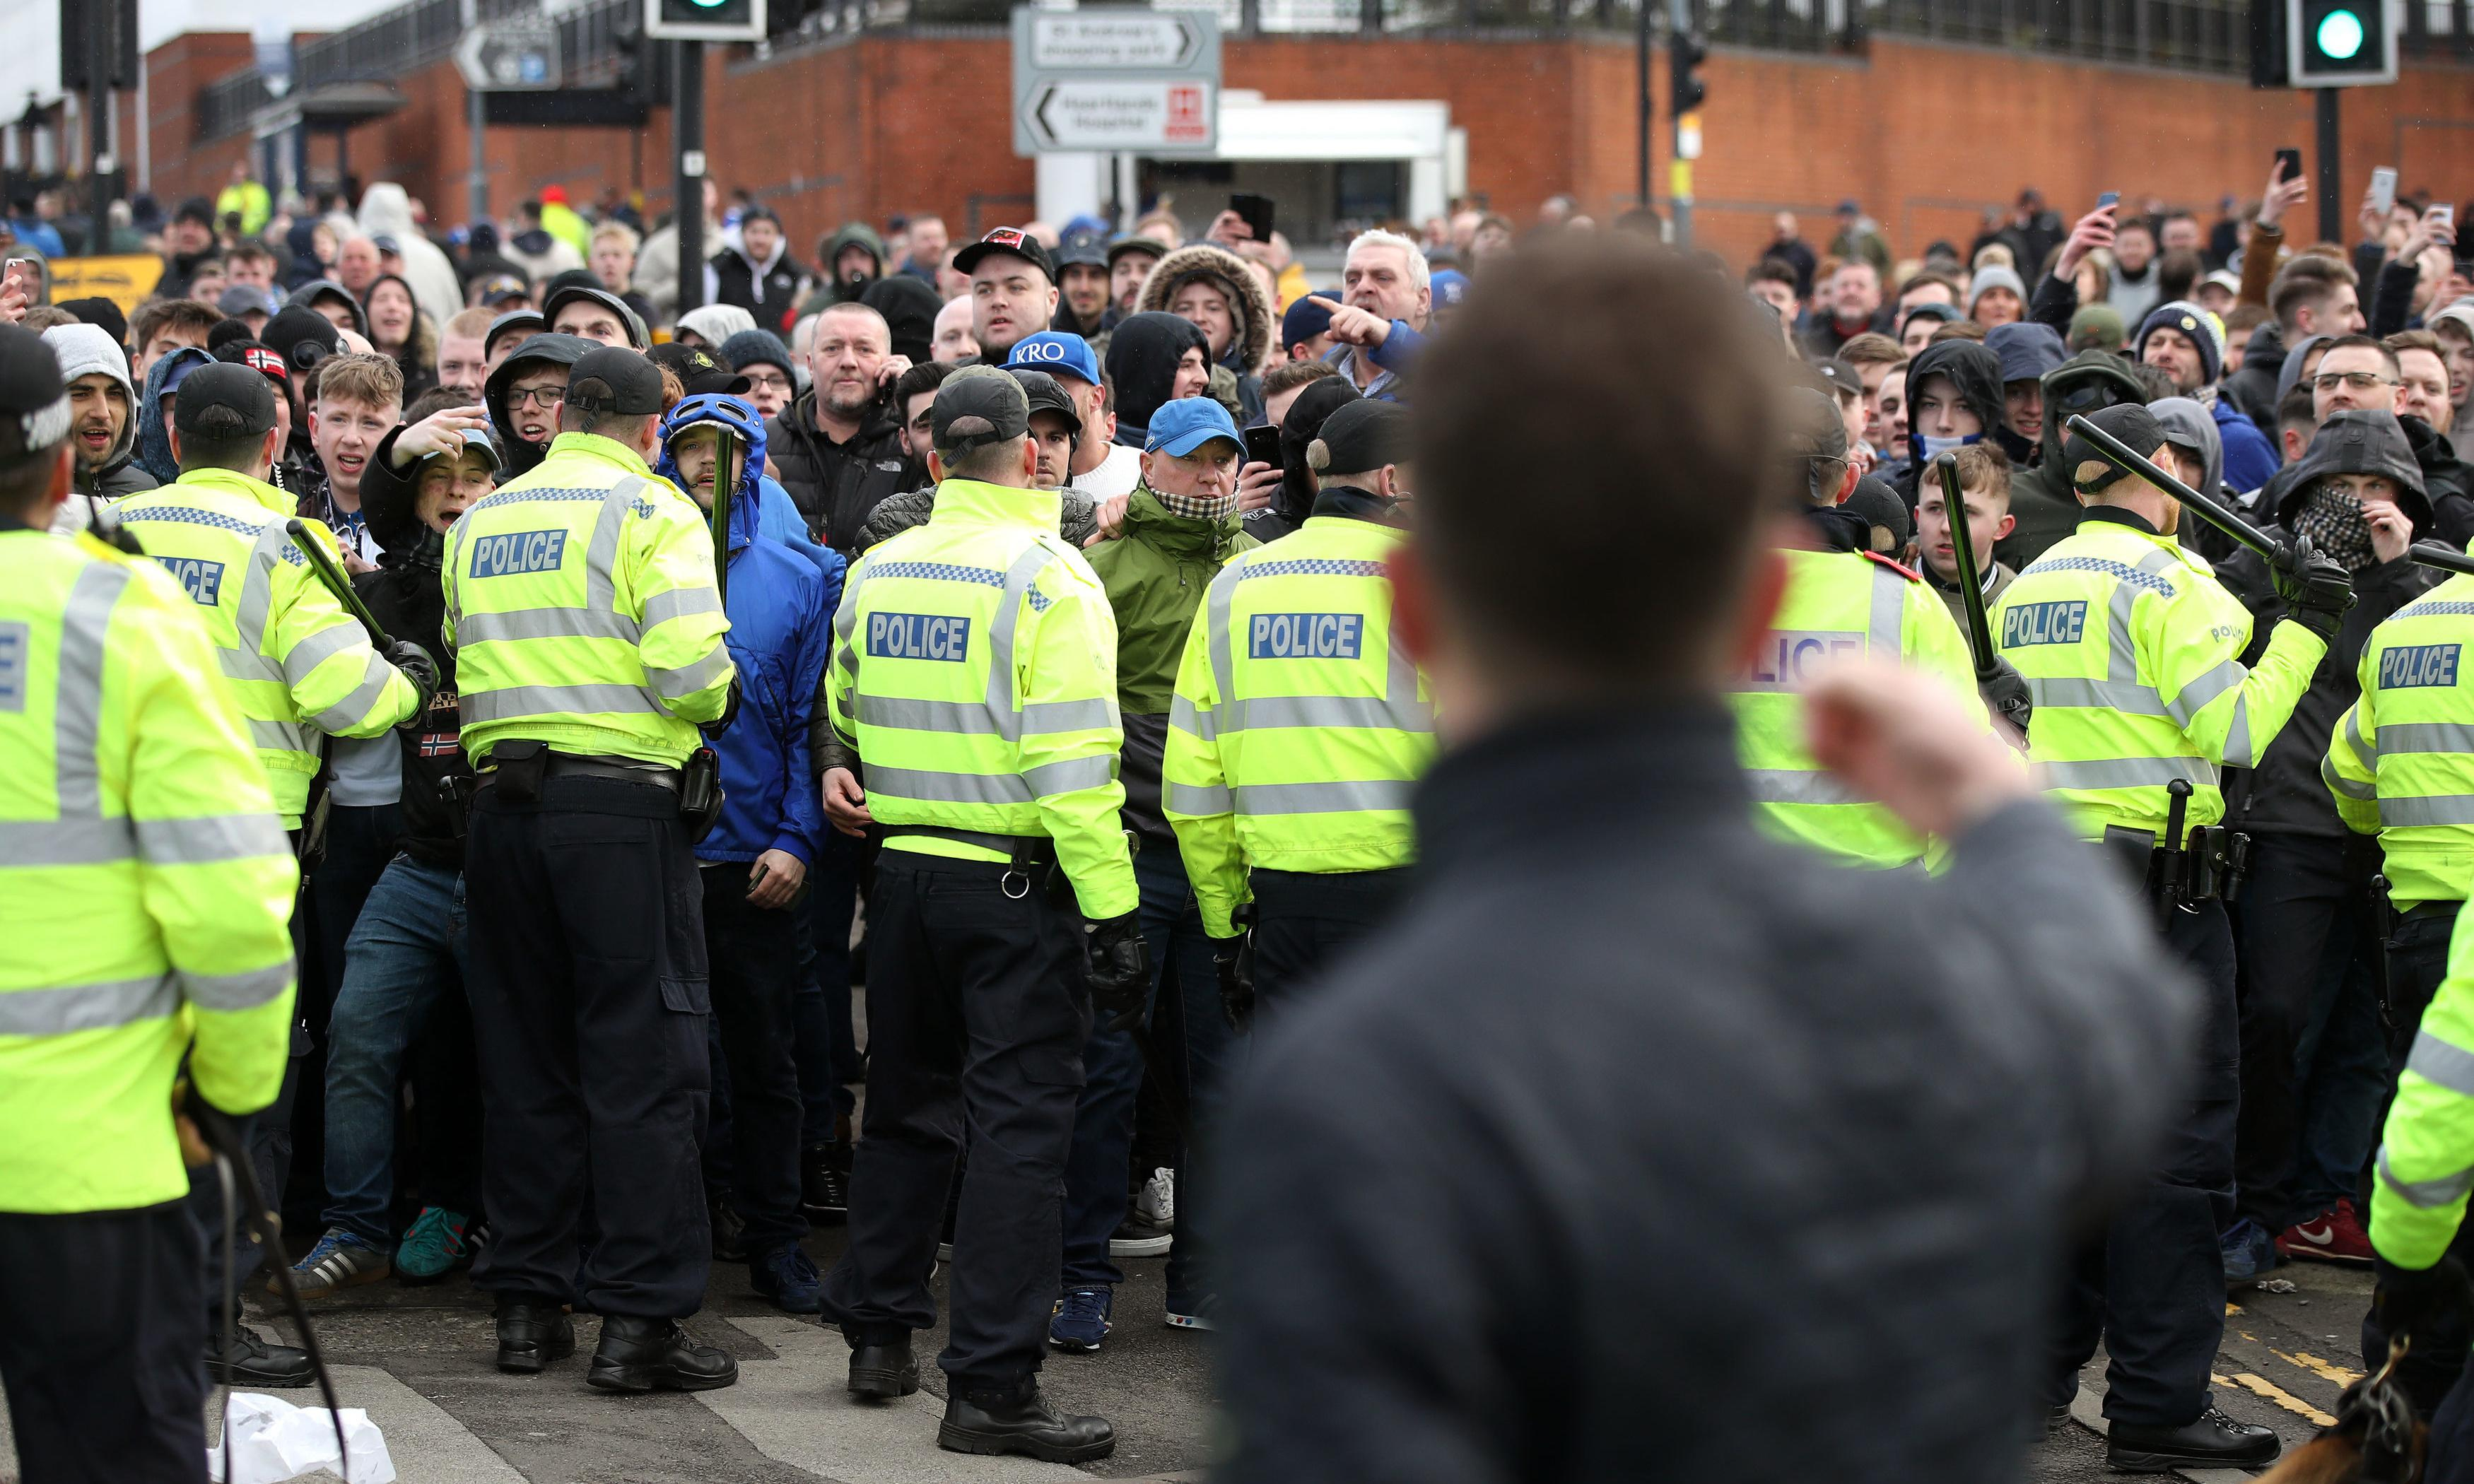 Manchester United fans top list of arrests involving racism as a factor